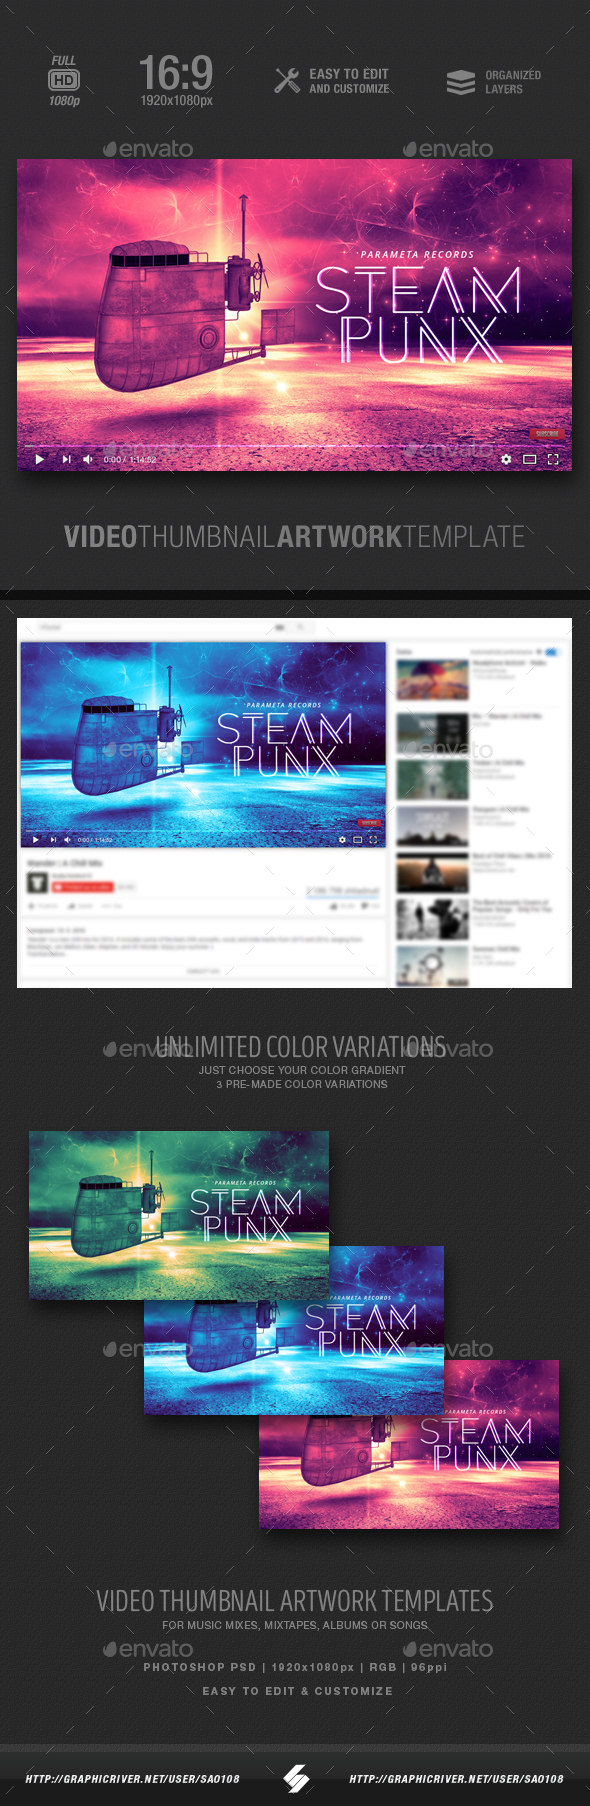 Steampunx - Music Video Thumbnail Artwork Template - YouTube Social Media